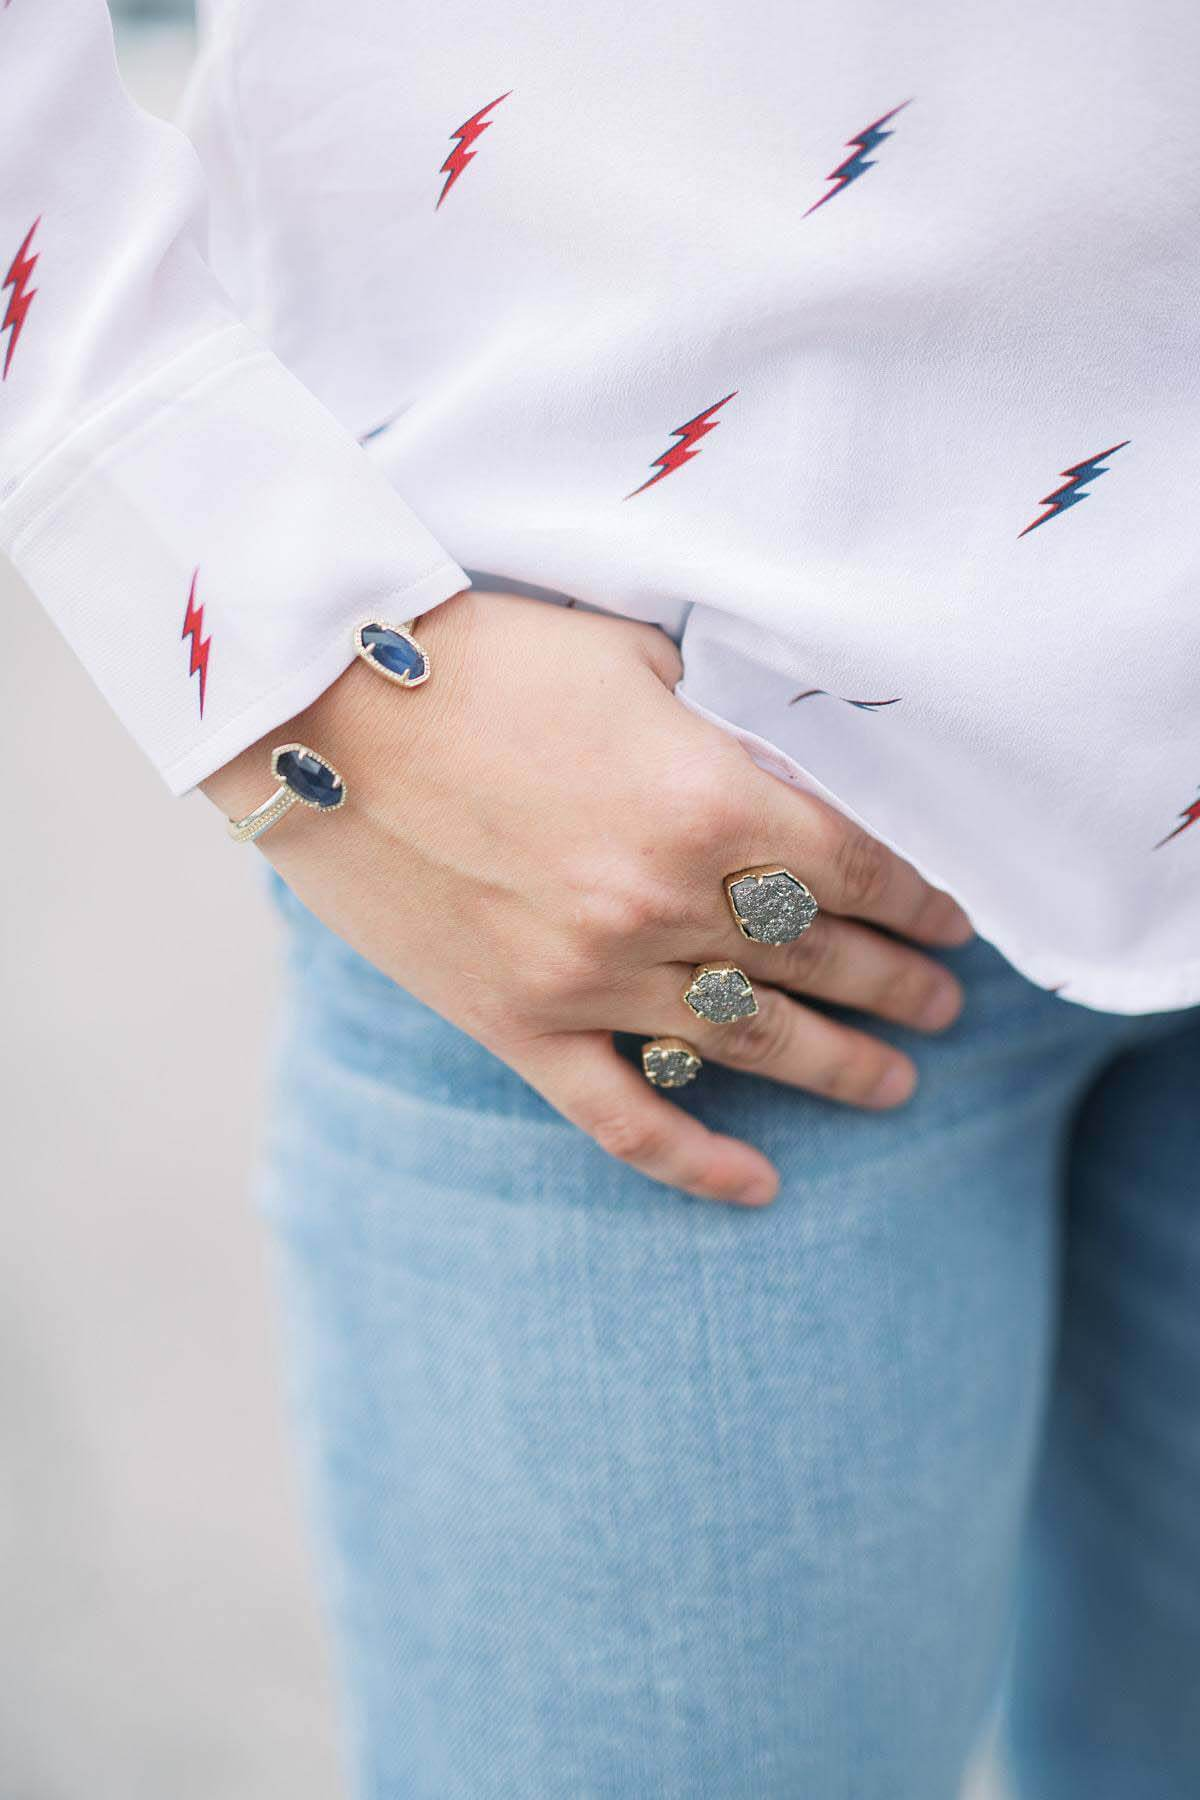 Kendra Scott model with bracelet and ring